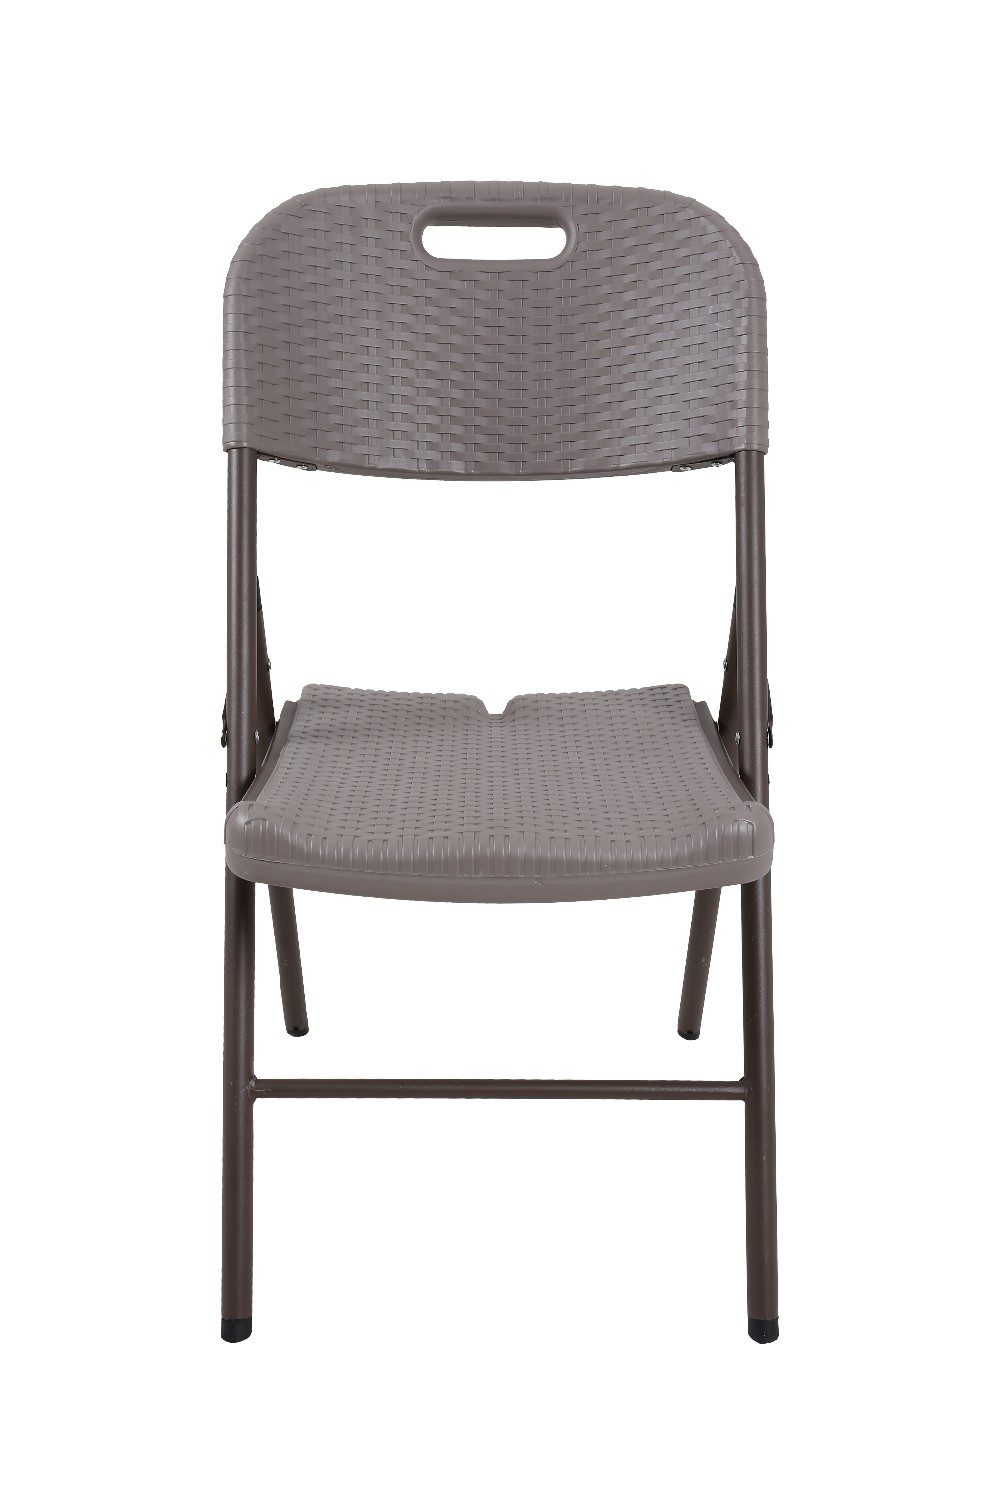 Admirable Rattan Folding Chair White Wicker Chair Hdpe Plastic Foldable Chair With Rattan Design Buy Rattan Folding Chair Cheap Wicker Rattan Chairs Folding Ncnpc Chair Design For Home Ncnpcorg